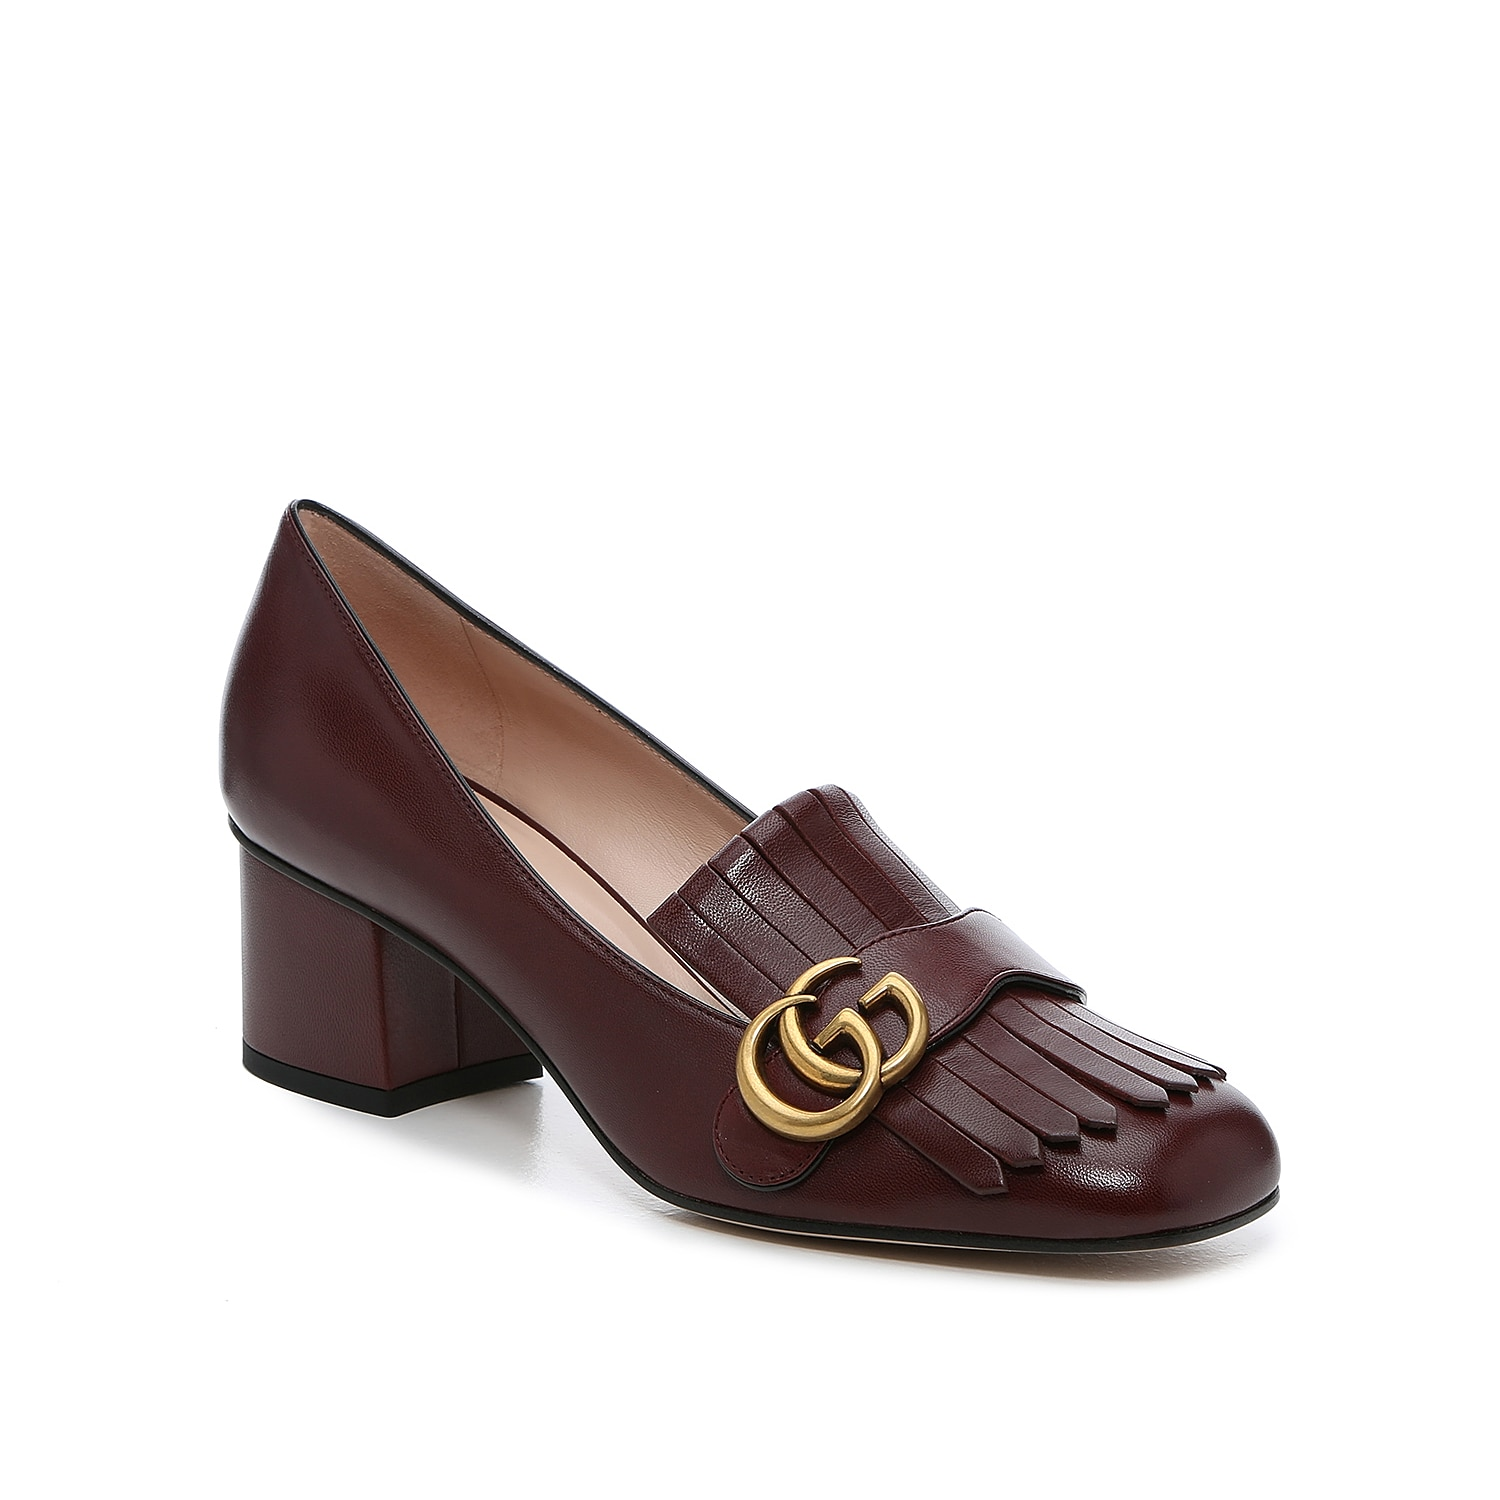 Elevating the appearance of a classic loafer, the Marmont 55 is a timeless Gucci design. Double G hardware with an antique gild decorates folded kiltie fringe that drapes over the vamp and draws attention to the modern yet softened square toe.   Made in Italy from carefully selected materials. To extend product life, protect from direct light, heat, and rain. Fill shoe with tissue paper to help maintain the shape and absorb humidity. Store in the provided flannel bag and structured shoe box.